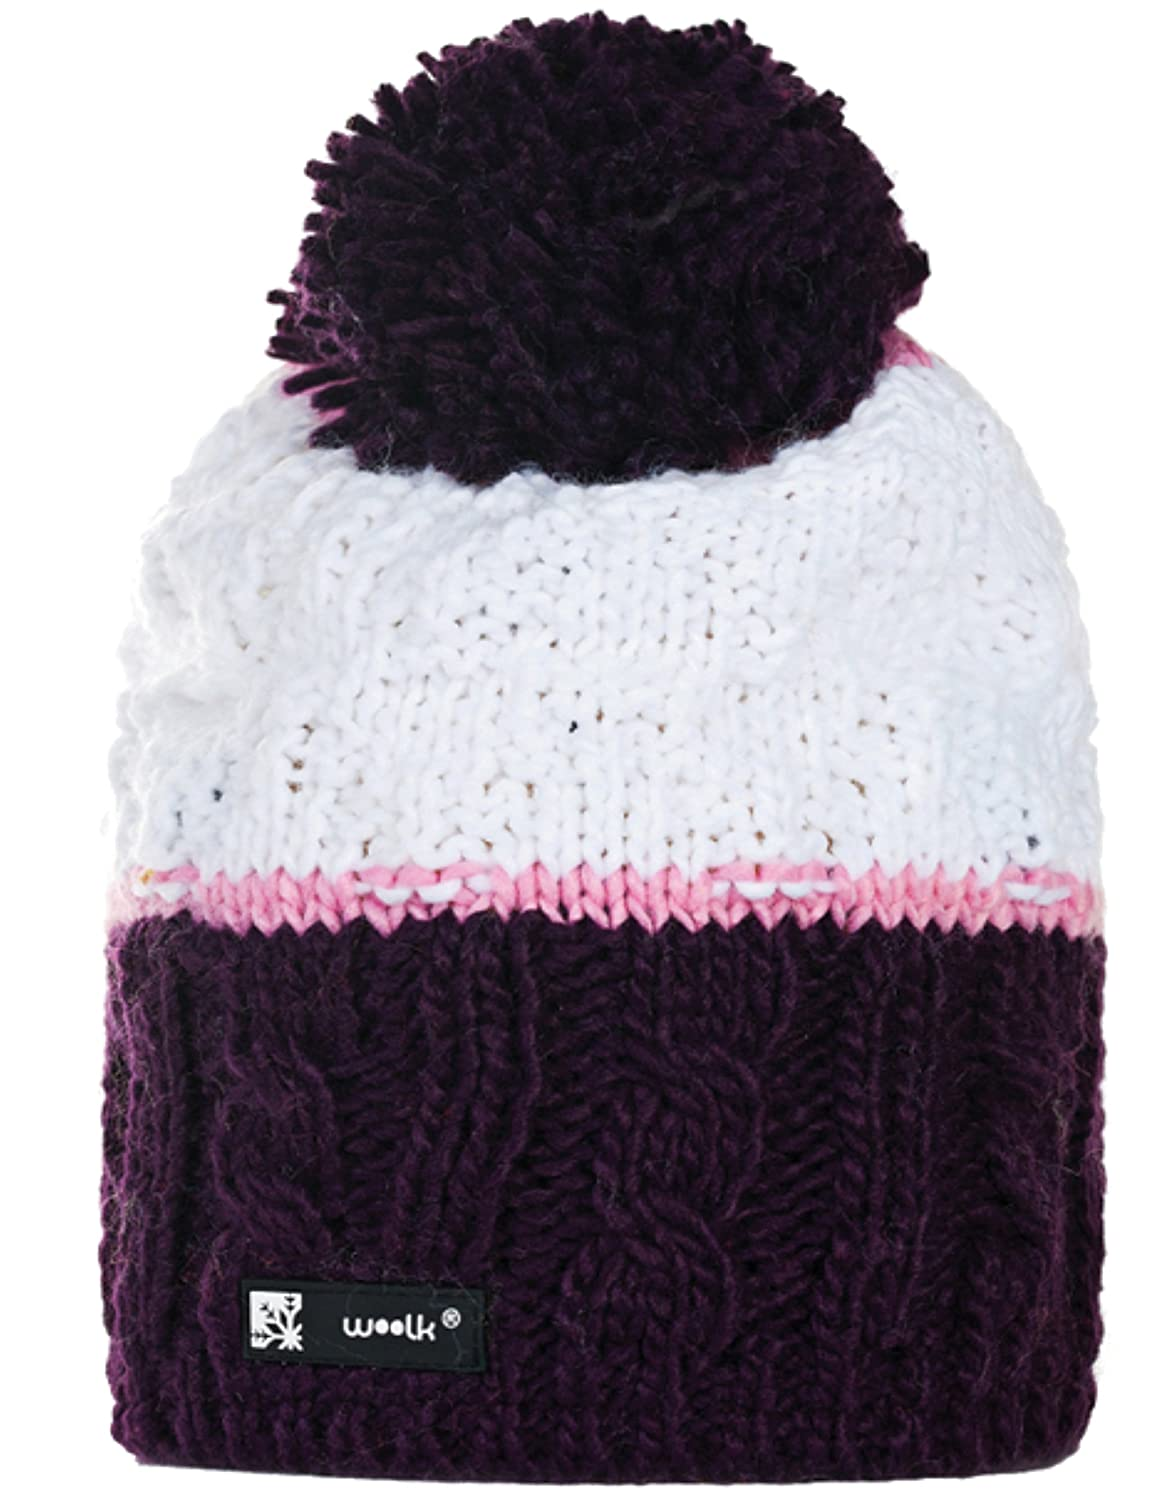 17f99853 4sold Unisex Men's Women's Girls Winter Hat Wool Knitted Beanie Fleece with  Pom Pom Cap Ski Snowboard Hats Bobble